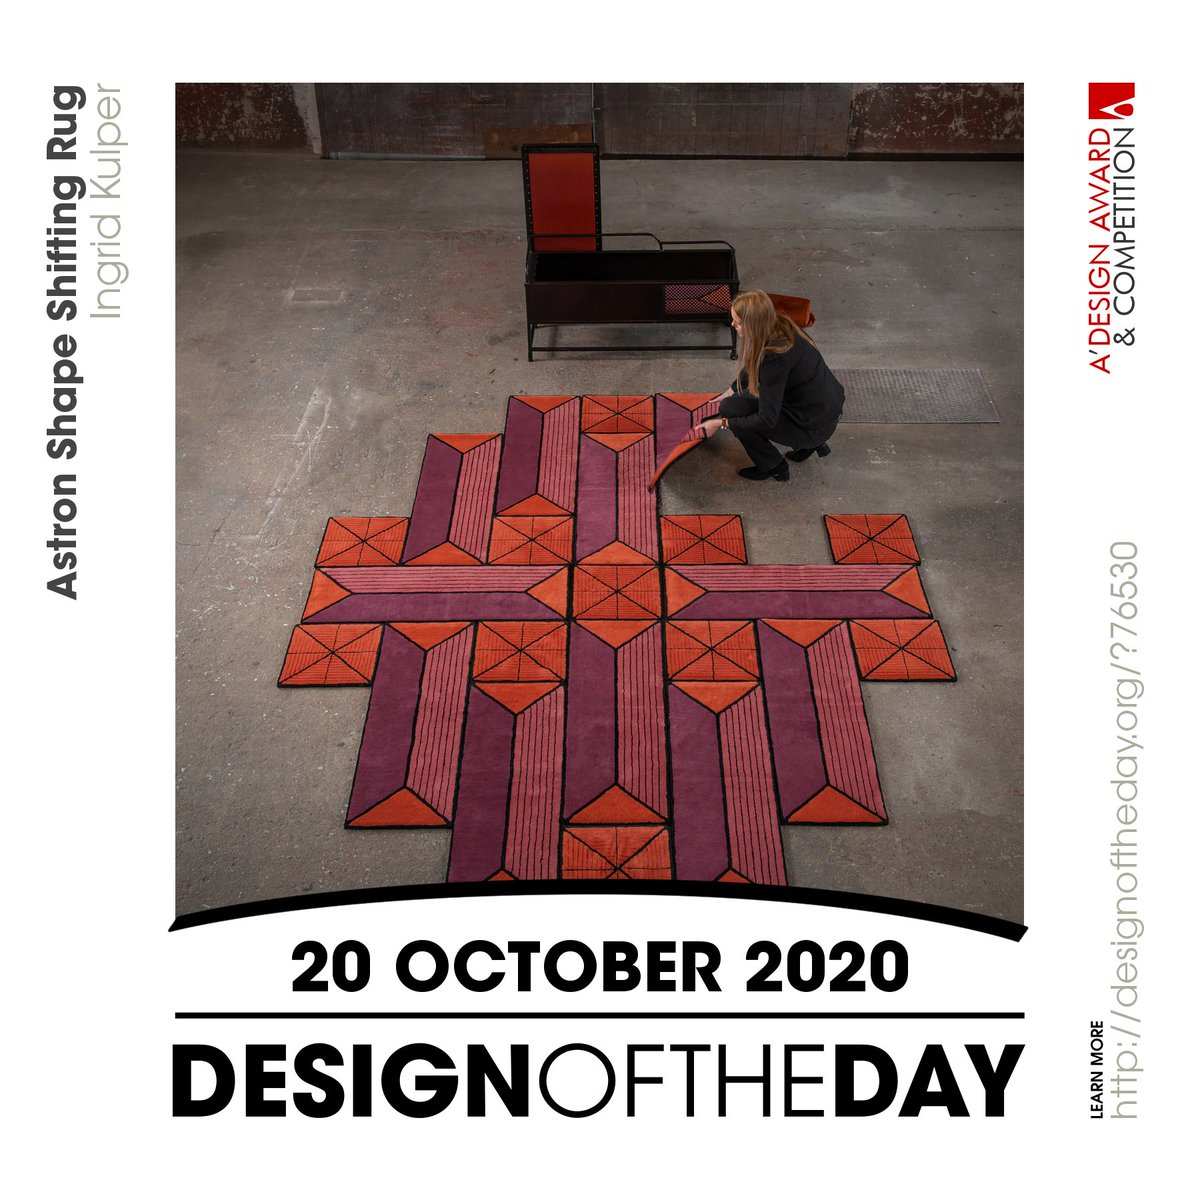 Congrats to Ingrid Kulper, the creator behind the Design of the Day of 20 October 2020 - Astron Shape-Shifting Rug. Check out this great work now. We are currently featuring it at https://t.co/NFAHWYccKt #designoftheday https://t.co/hj6gRngOYF